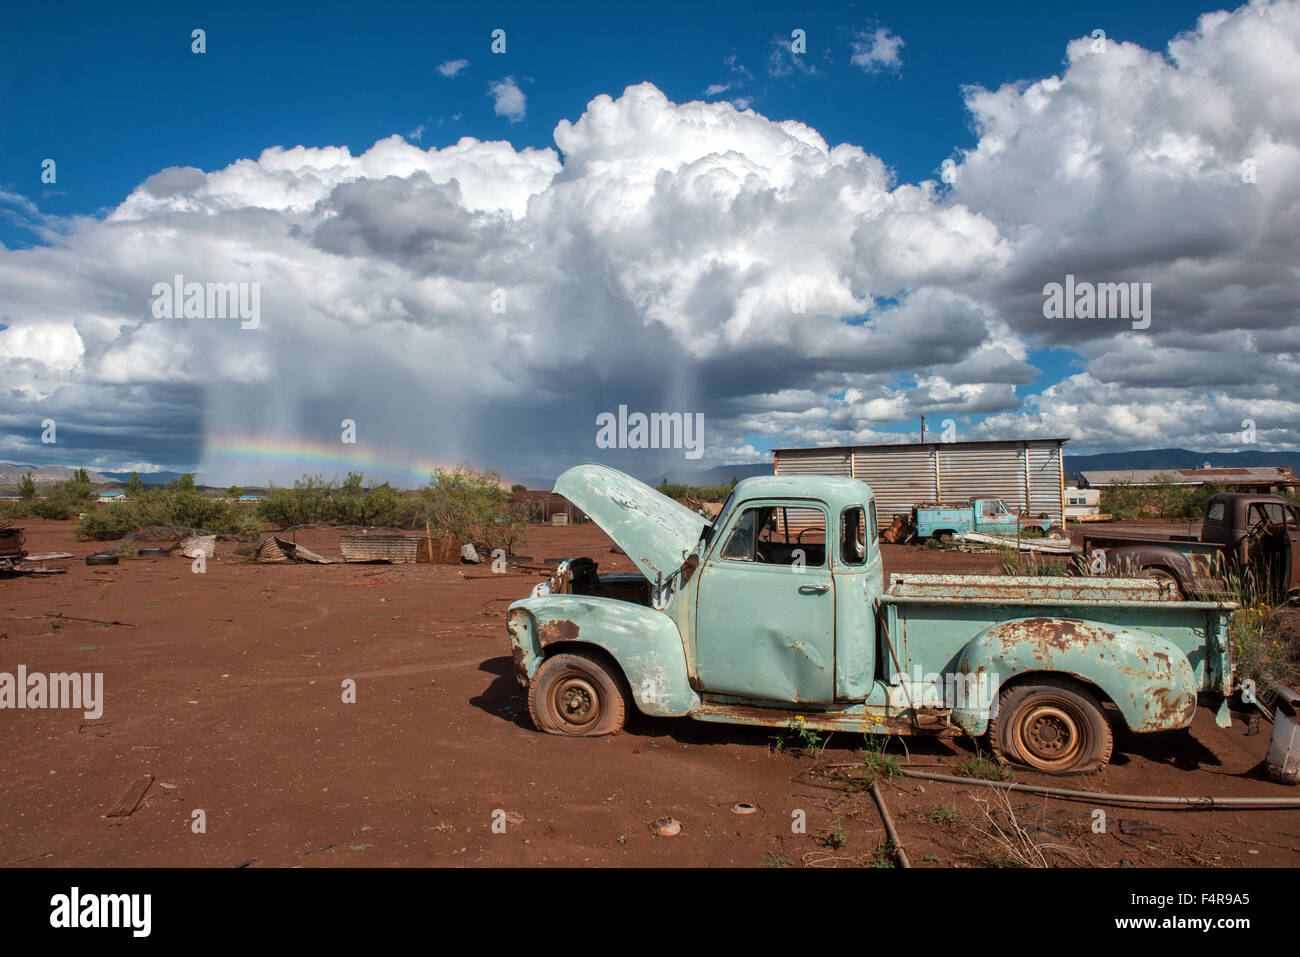 USA, United States, America, Southwest, New Mexico, Otero County, Alamogordo, redneck, poverty, ghost town, outback, - Stock Image